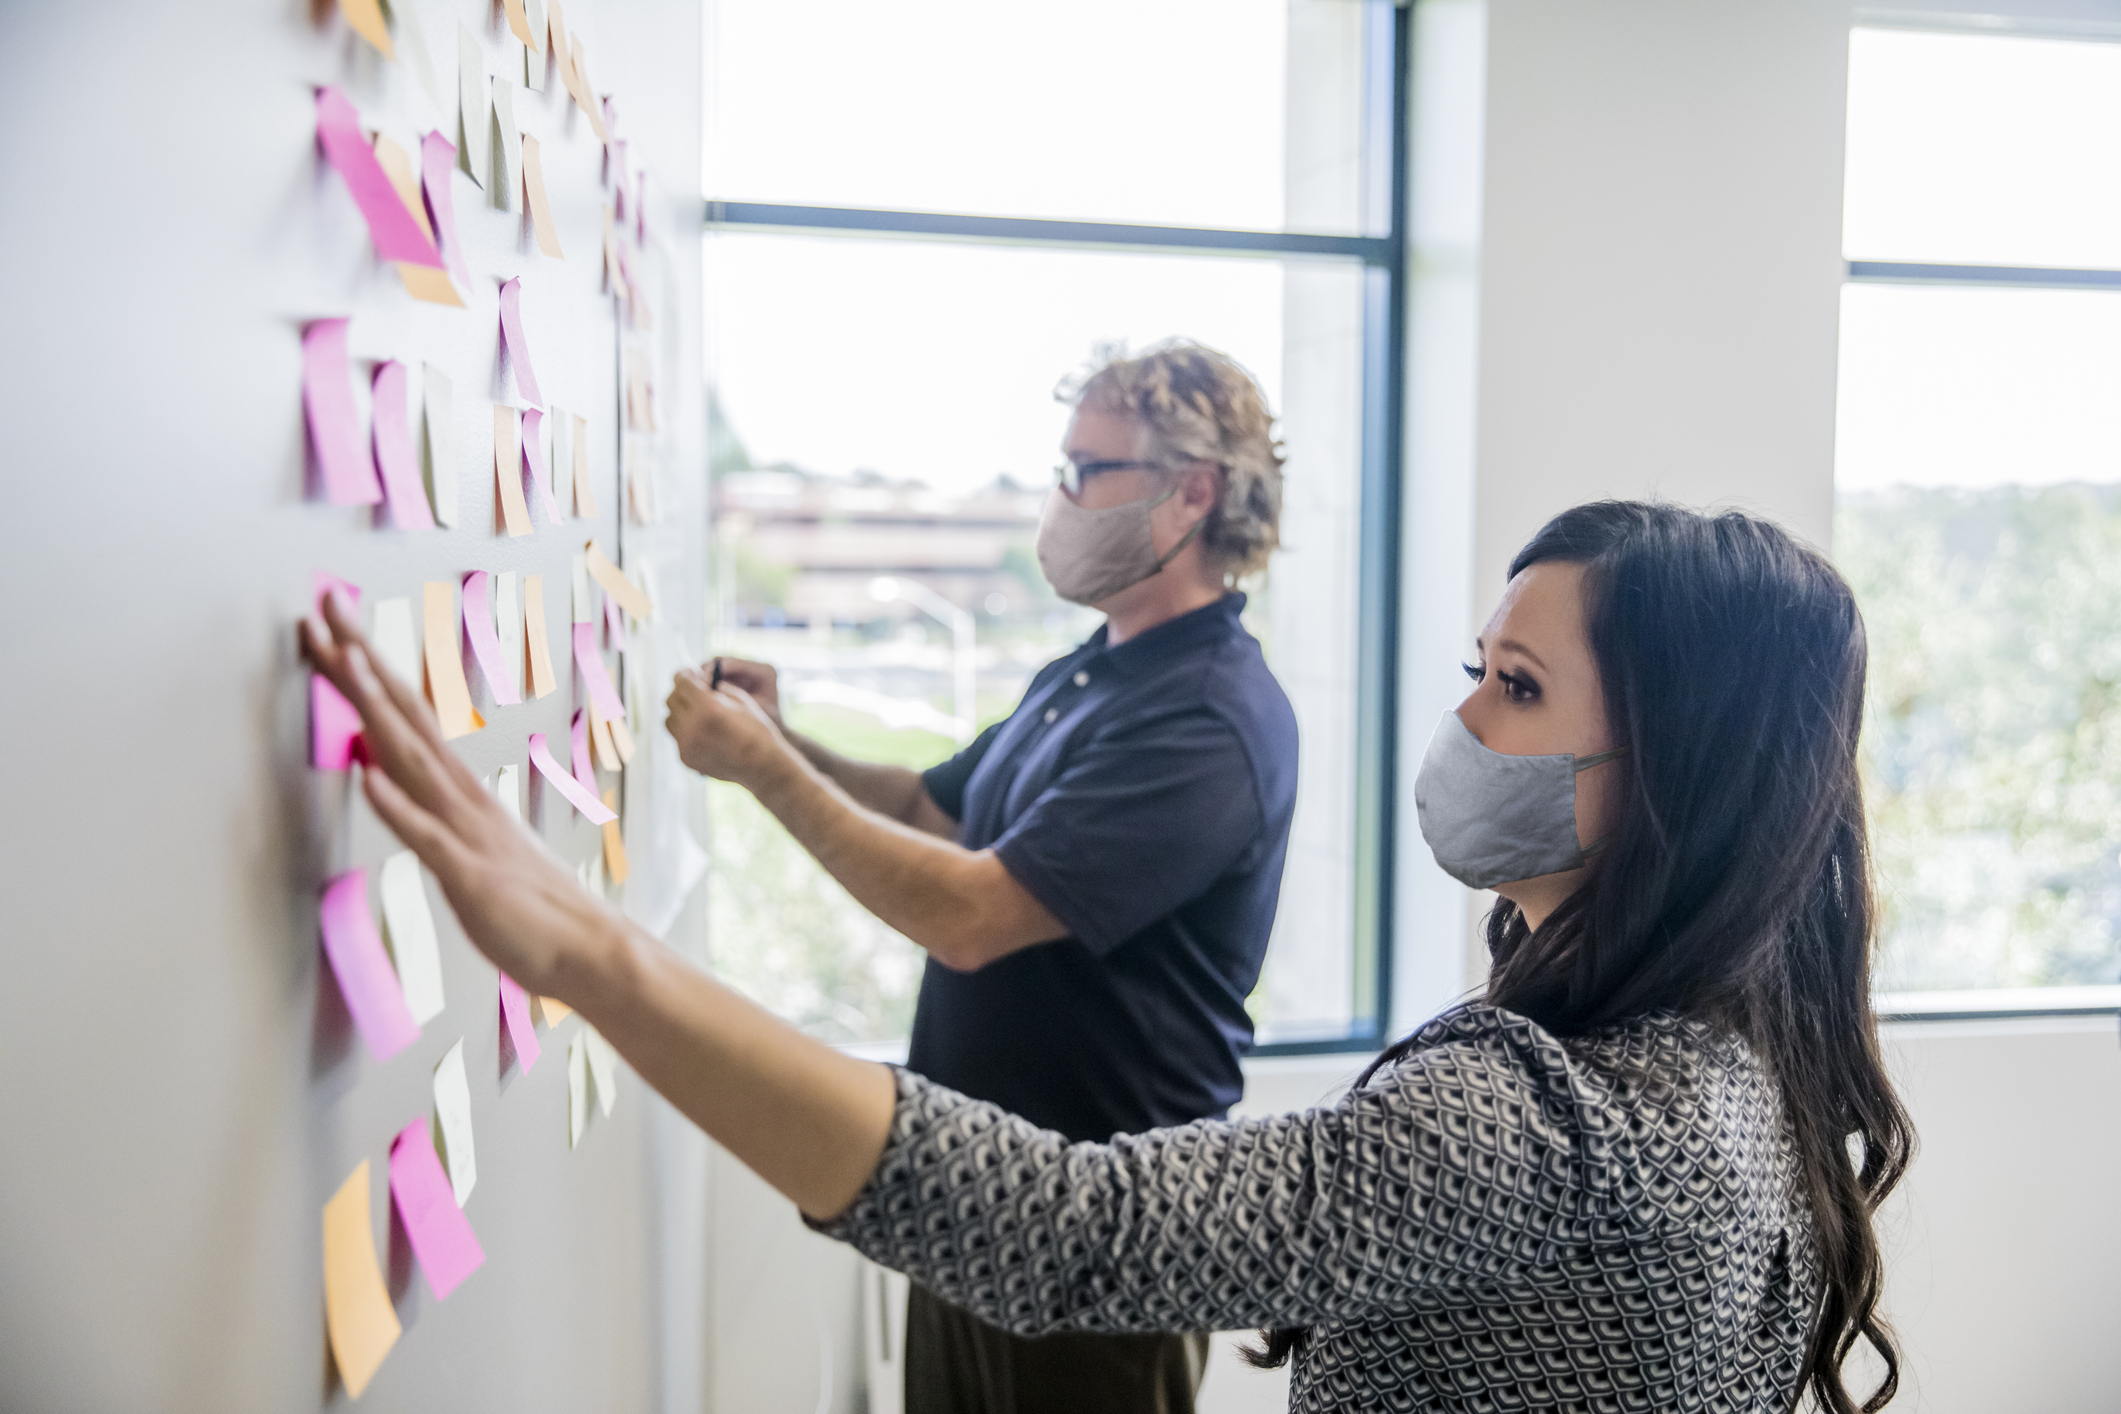 man and woman putting post-it notes up on wall wearing masks